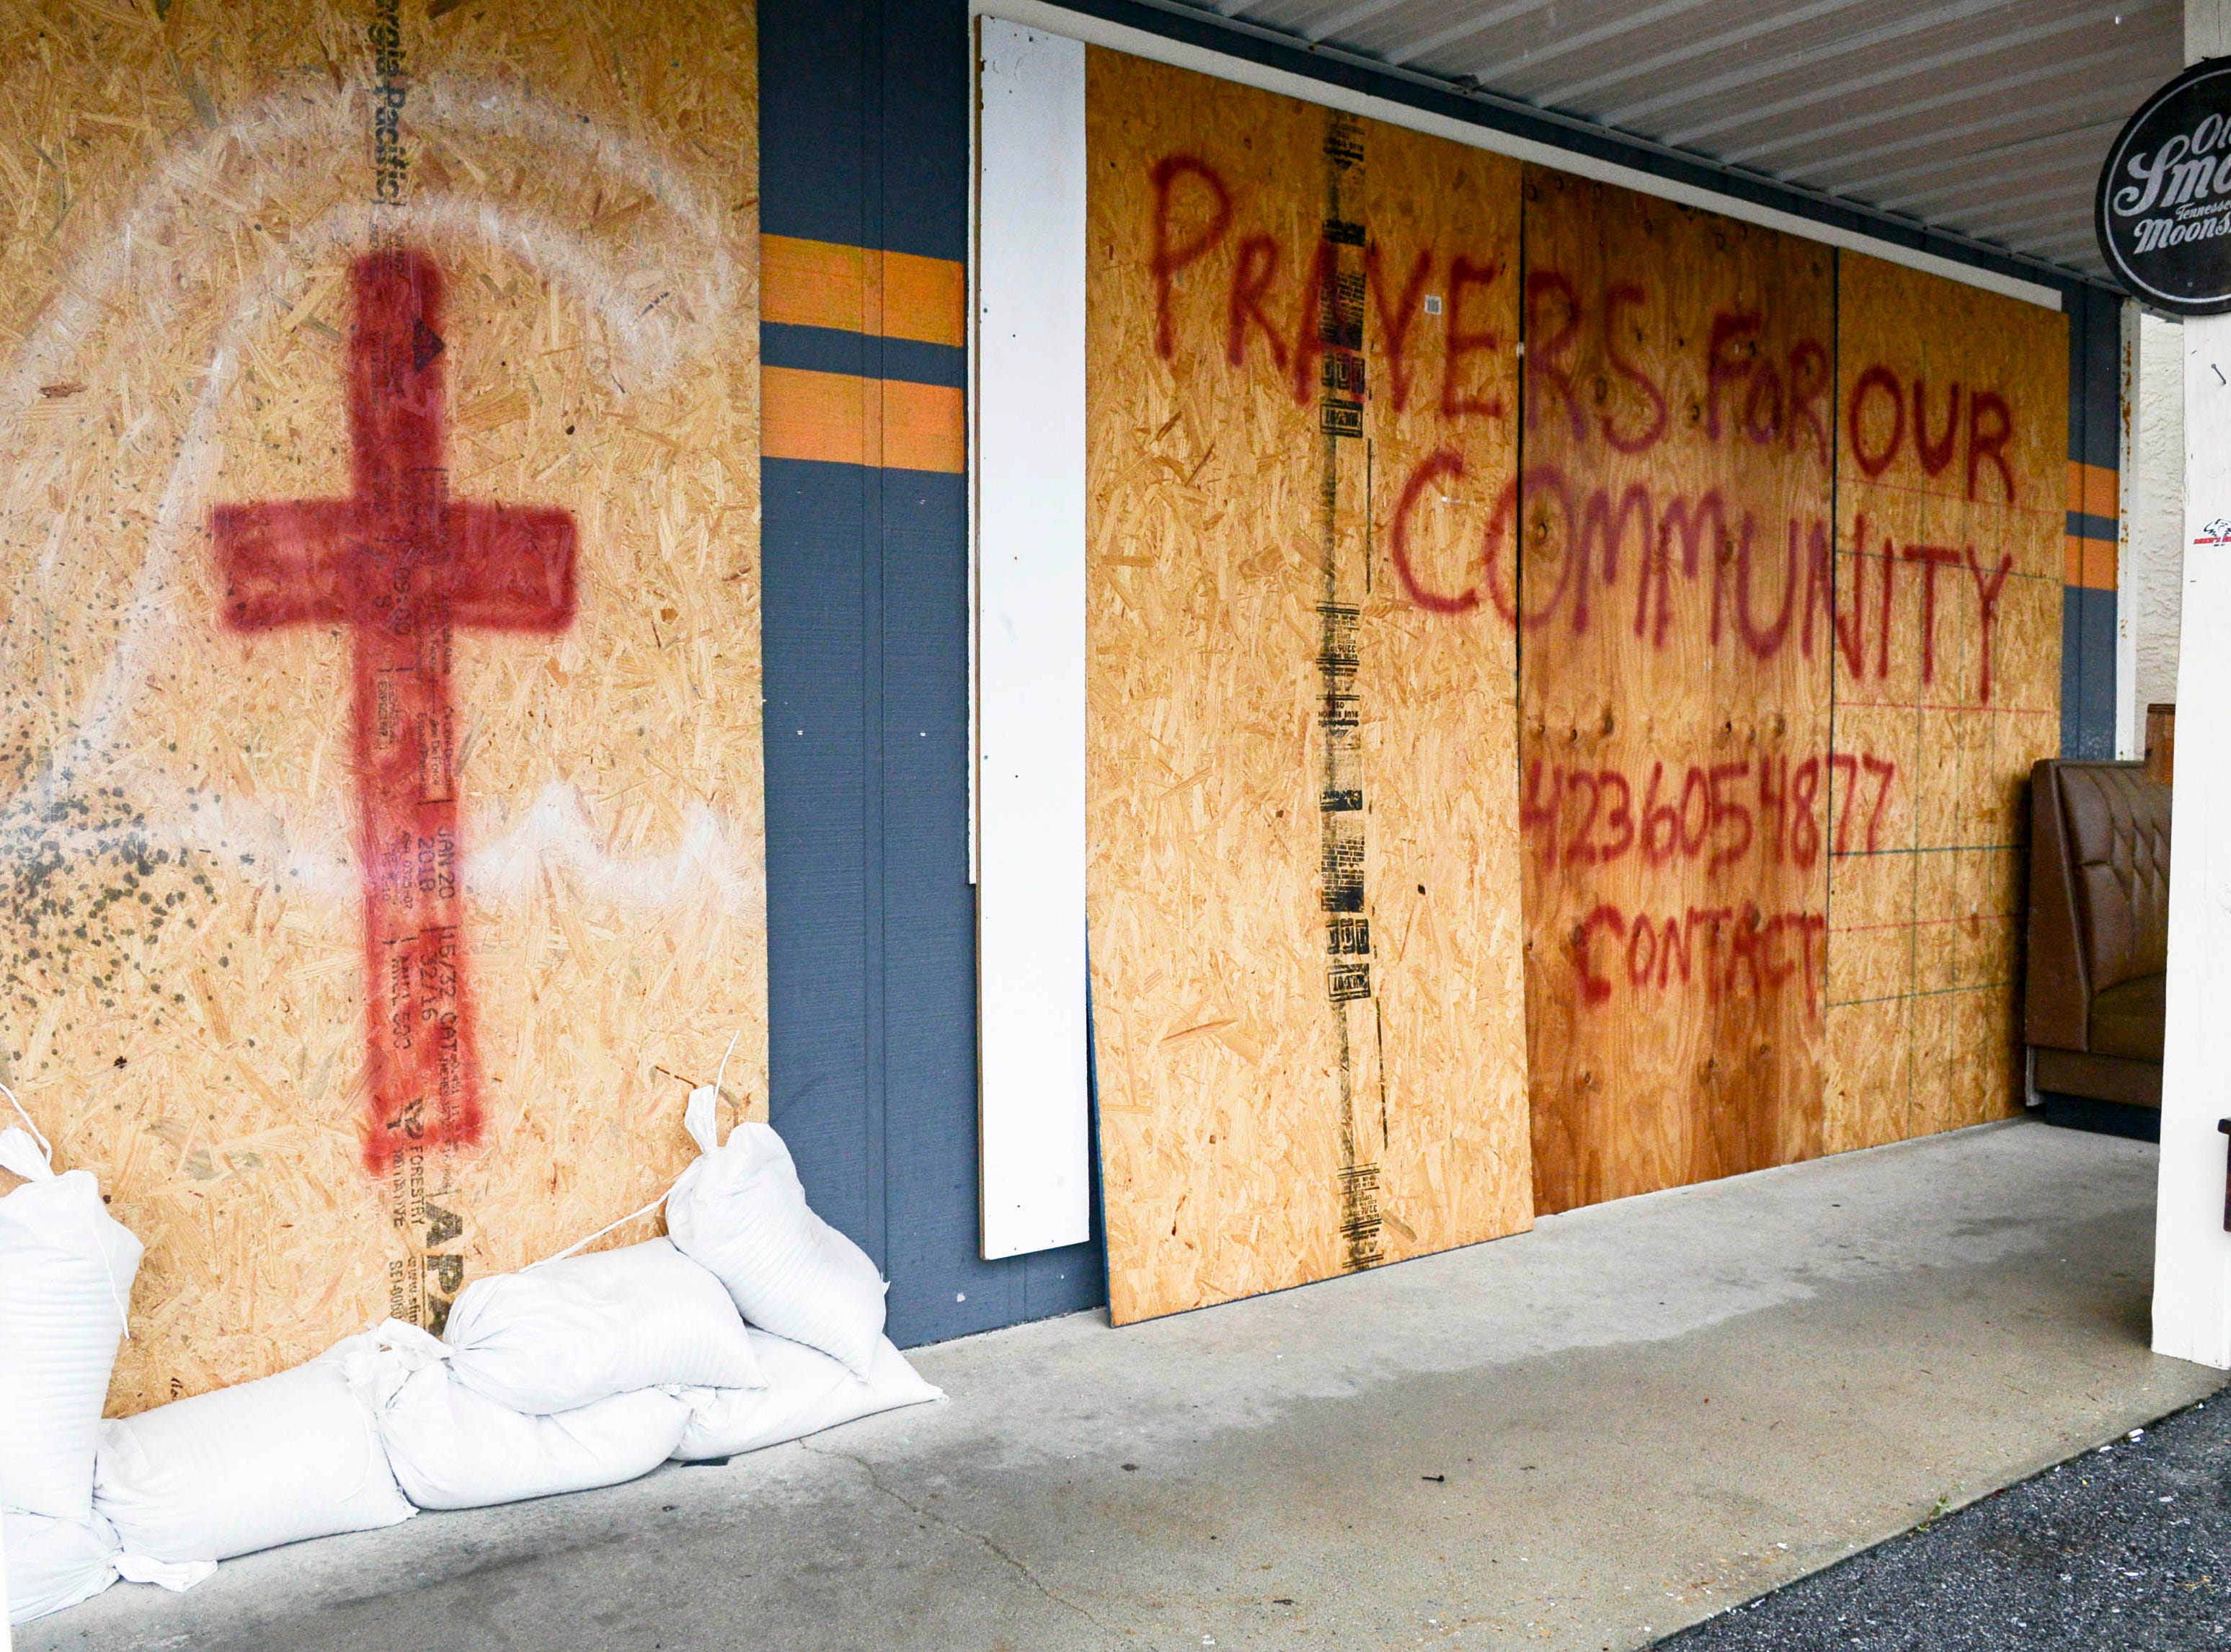 Oct 10, 2018; Panama City, FL, USA; Sandbags, boards and a prayer request guard the front of South Iron Customs motorcycle shop on Panama City Beach.